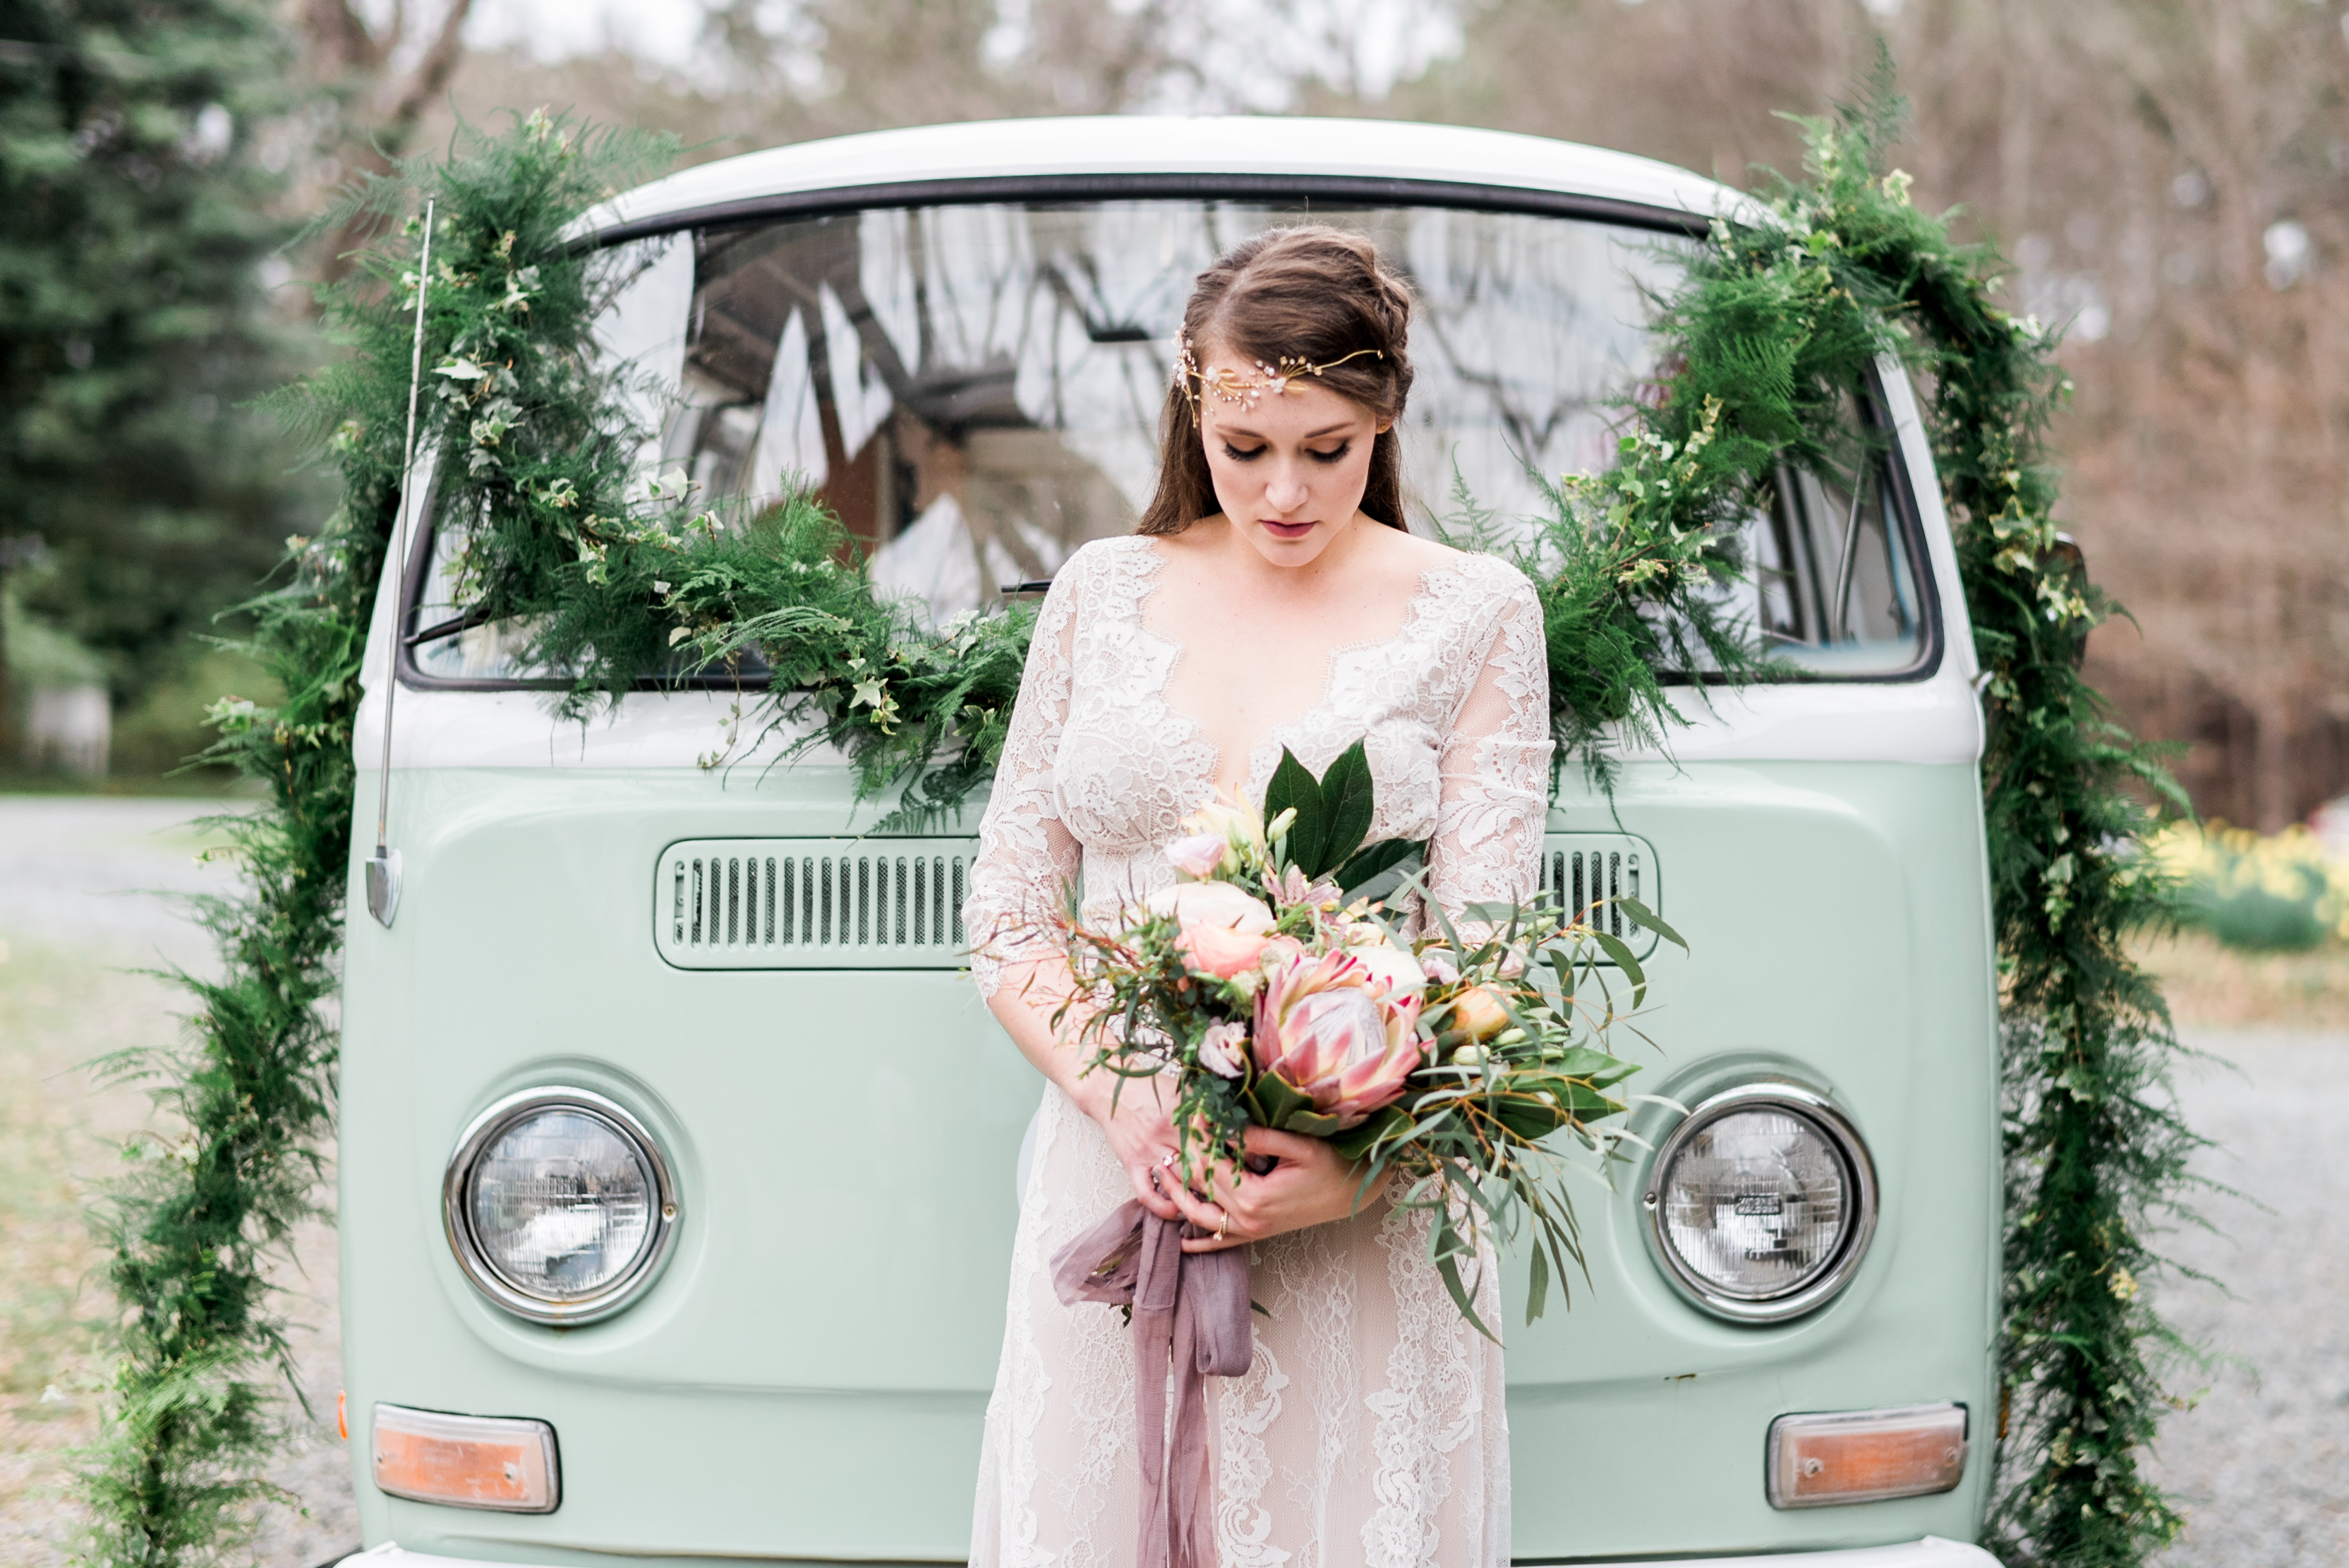 wedding dress bridal gown boutique shop raleigh nc • Gilded Bridal